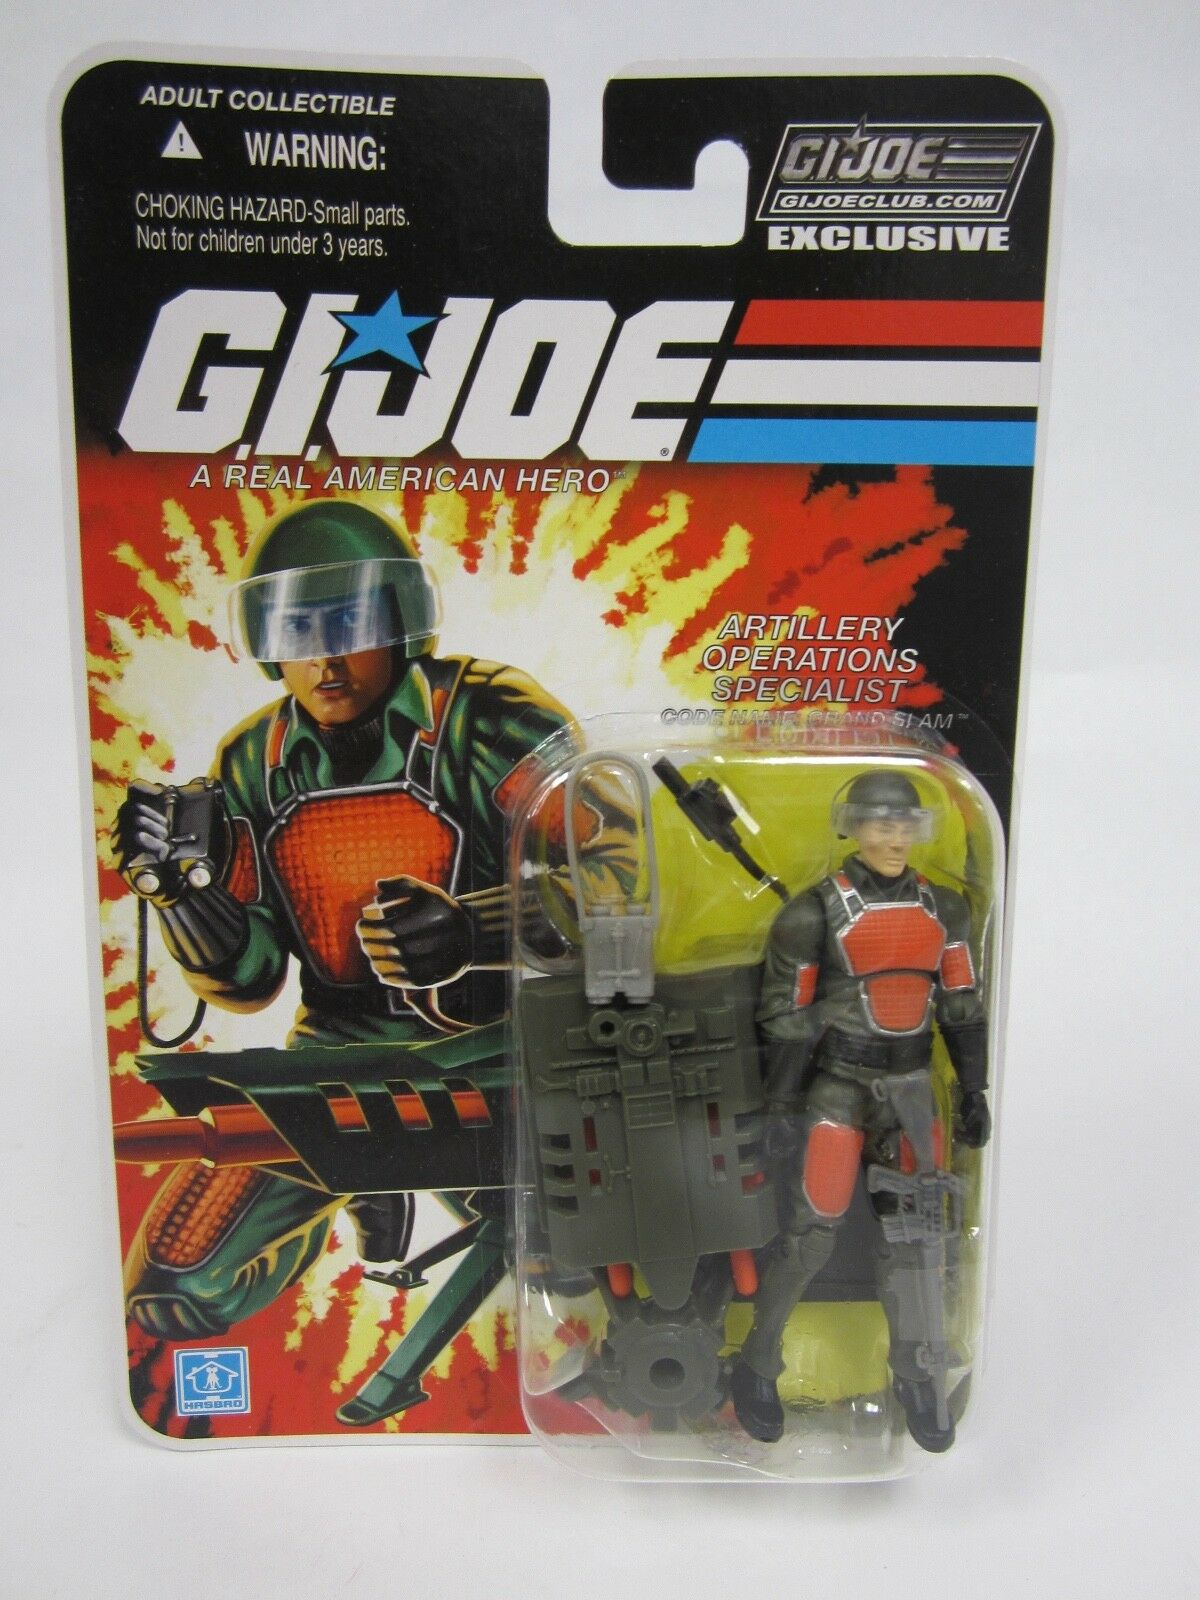 G.I. JOE COLLECTOR'S 2.0 CLUB EXCLUSIVE FSS SUBSCRIPTION GRAND SLAM ACTION FIGUR